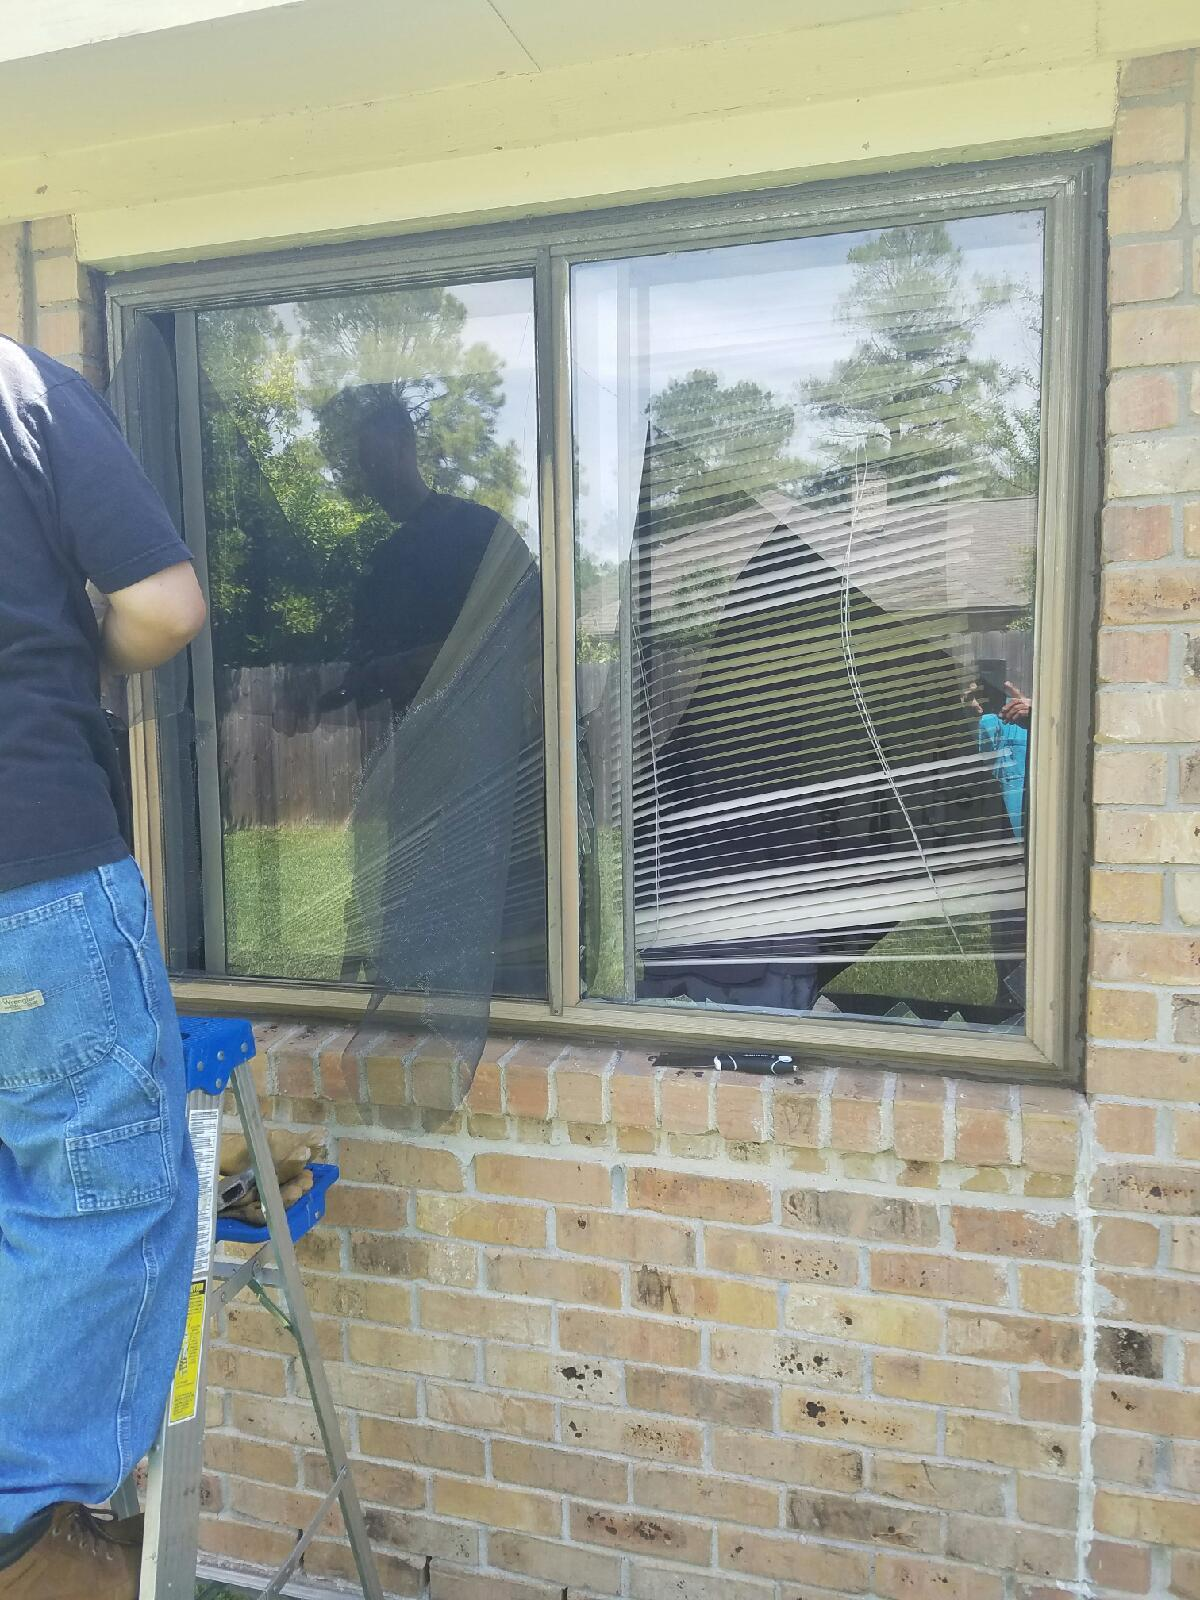 Mirror replacement needed in Sugar Land, TX